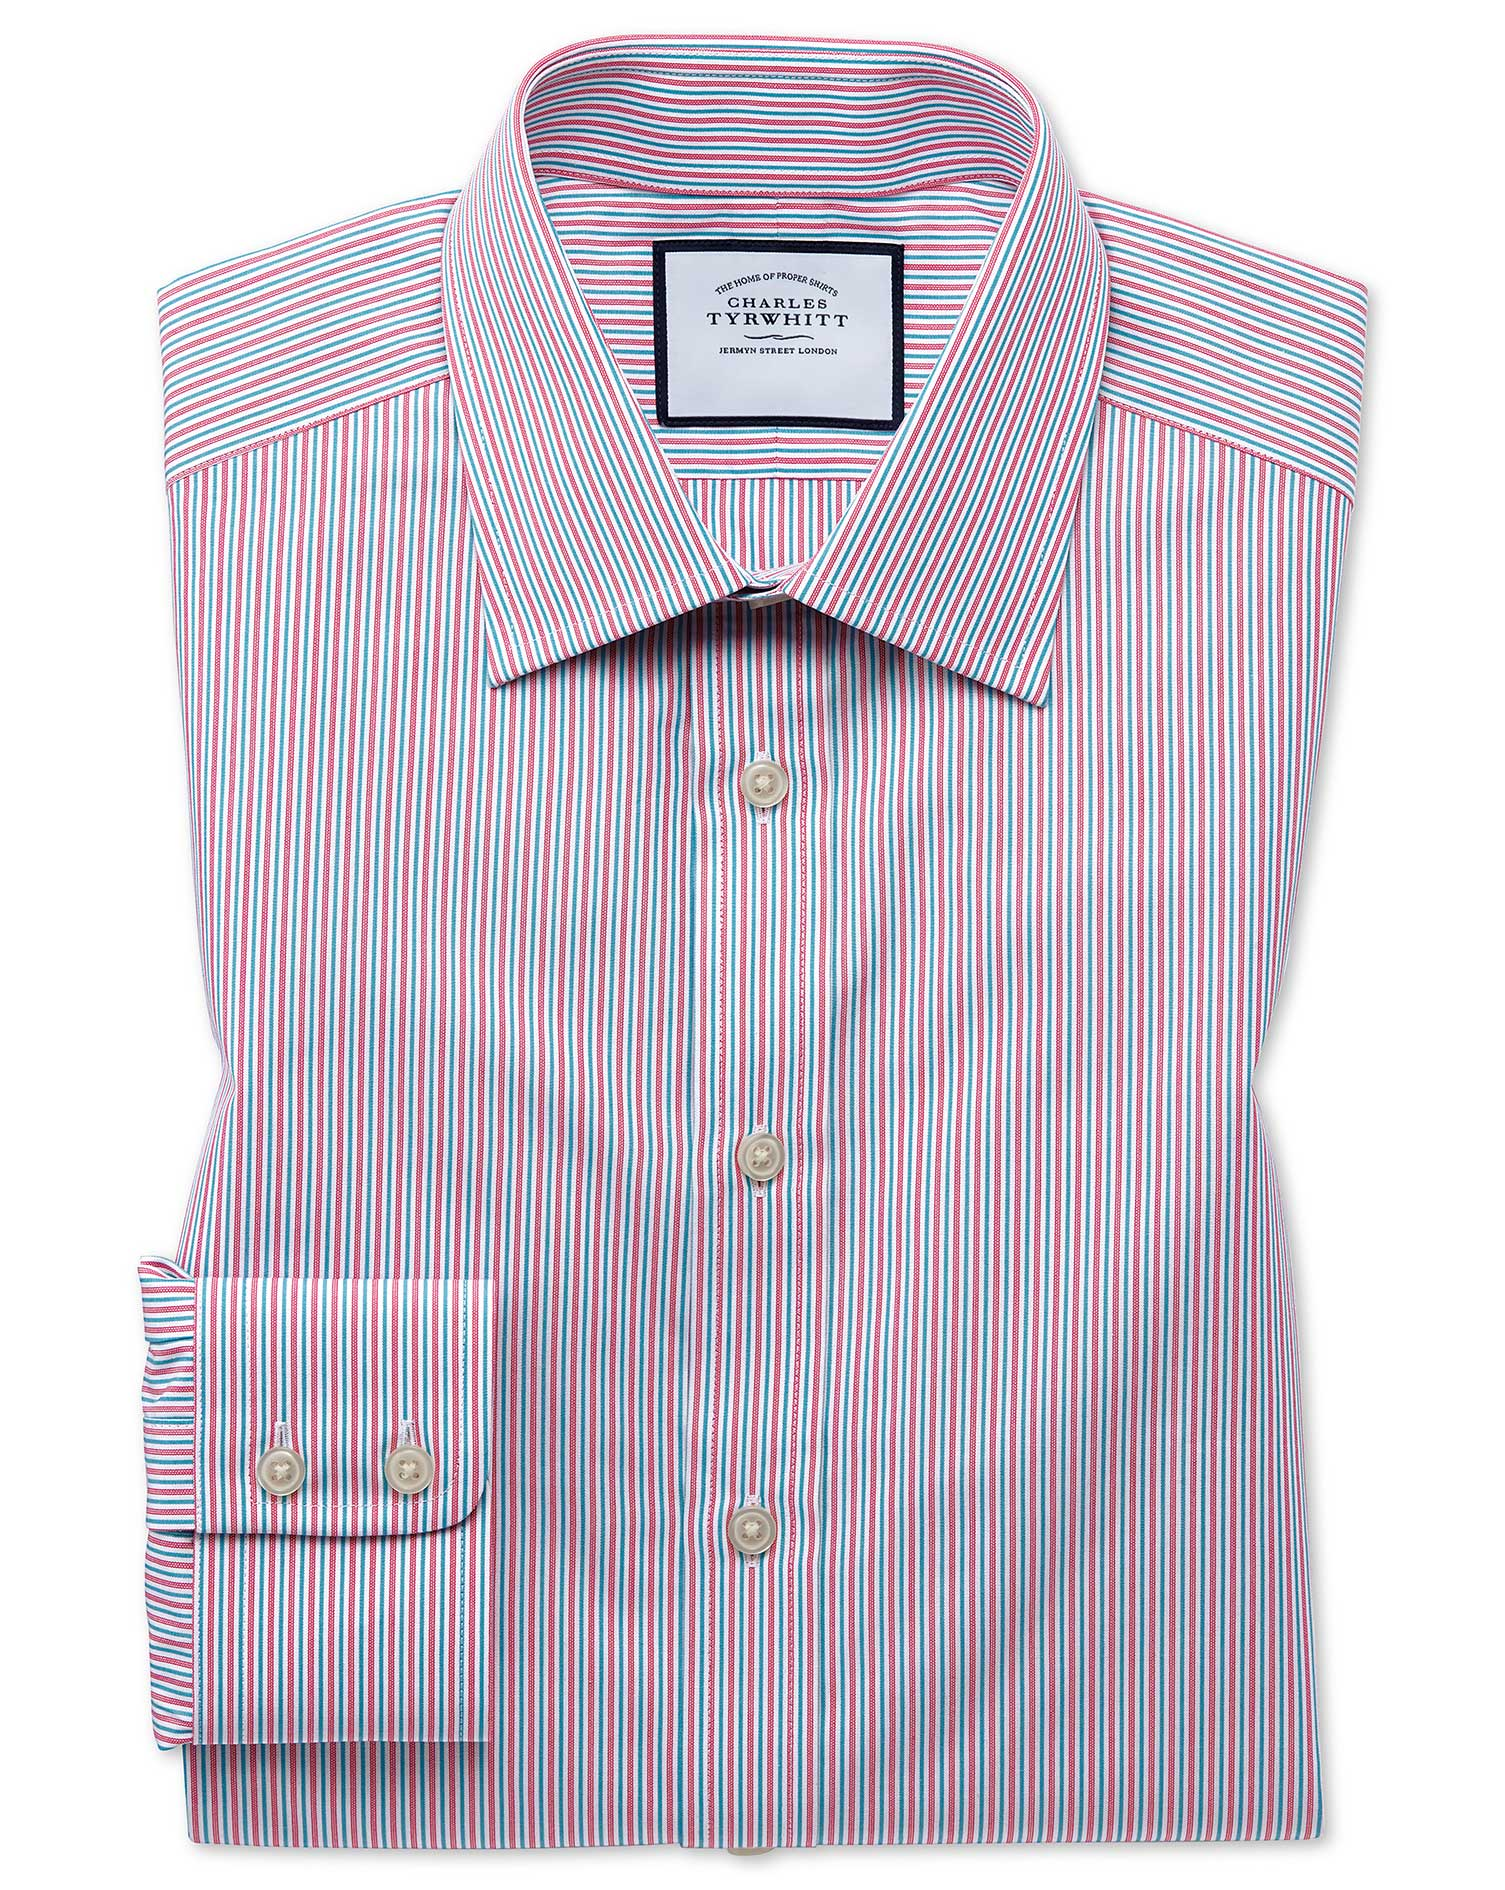 Classic Fit Egyptian Cotton Poplin Pink Multi Stripe Formal Shirt Single Cuff Size 17.5/35 by Charle